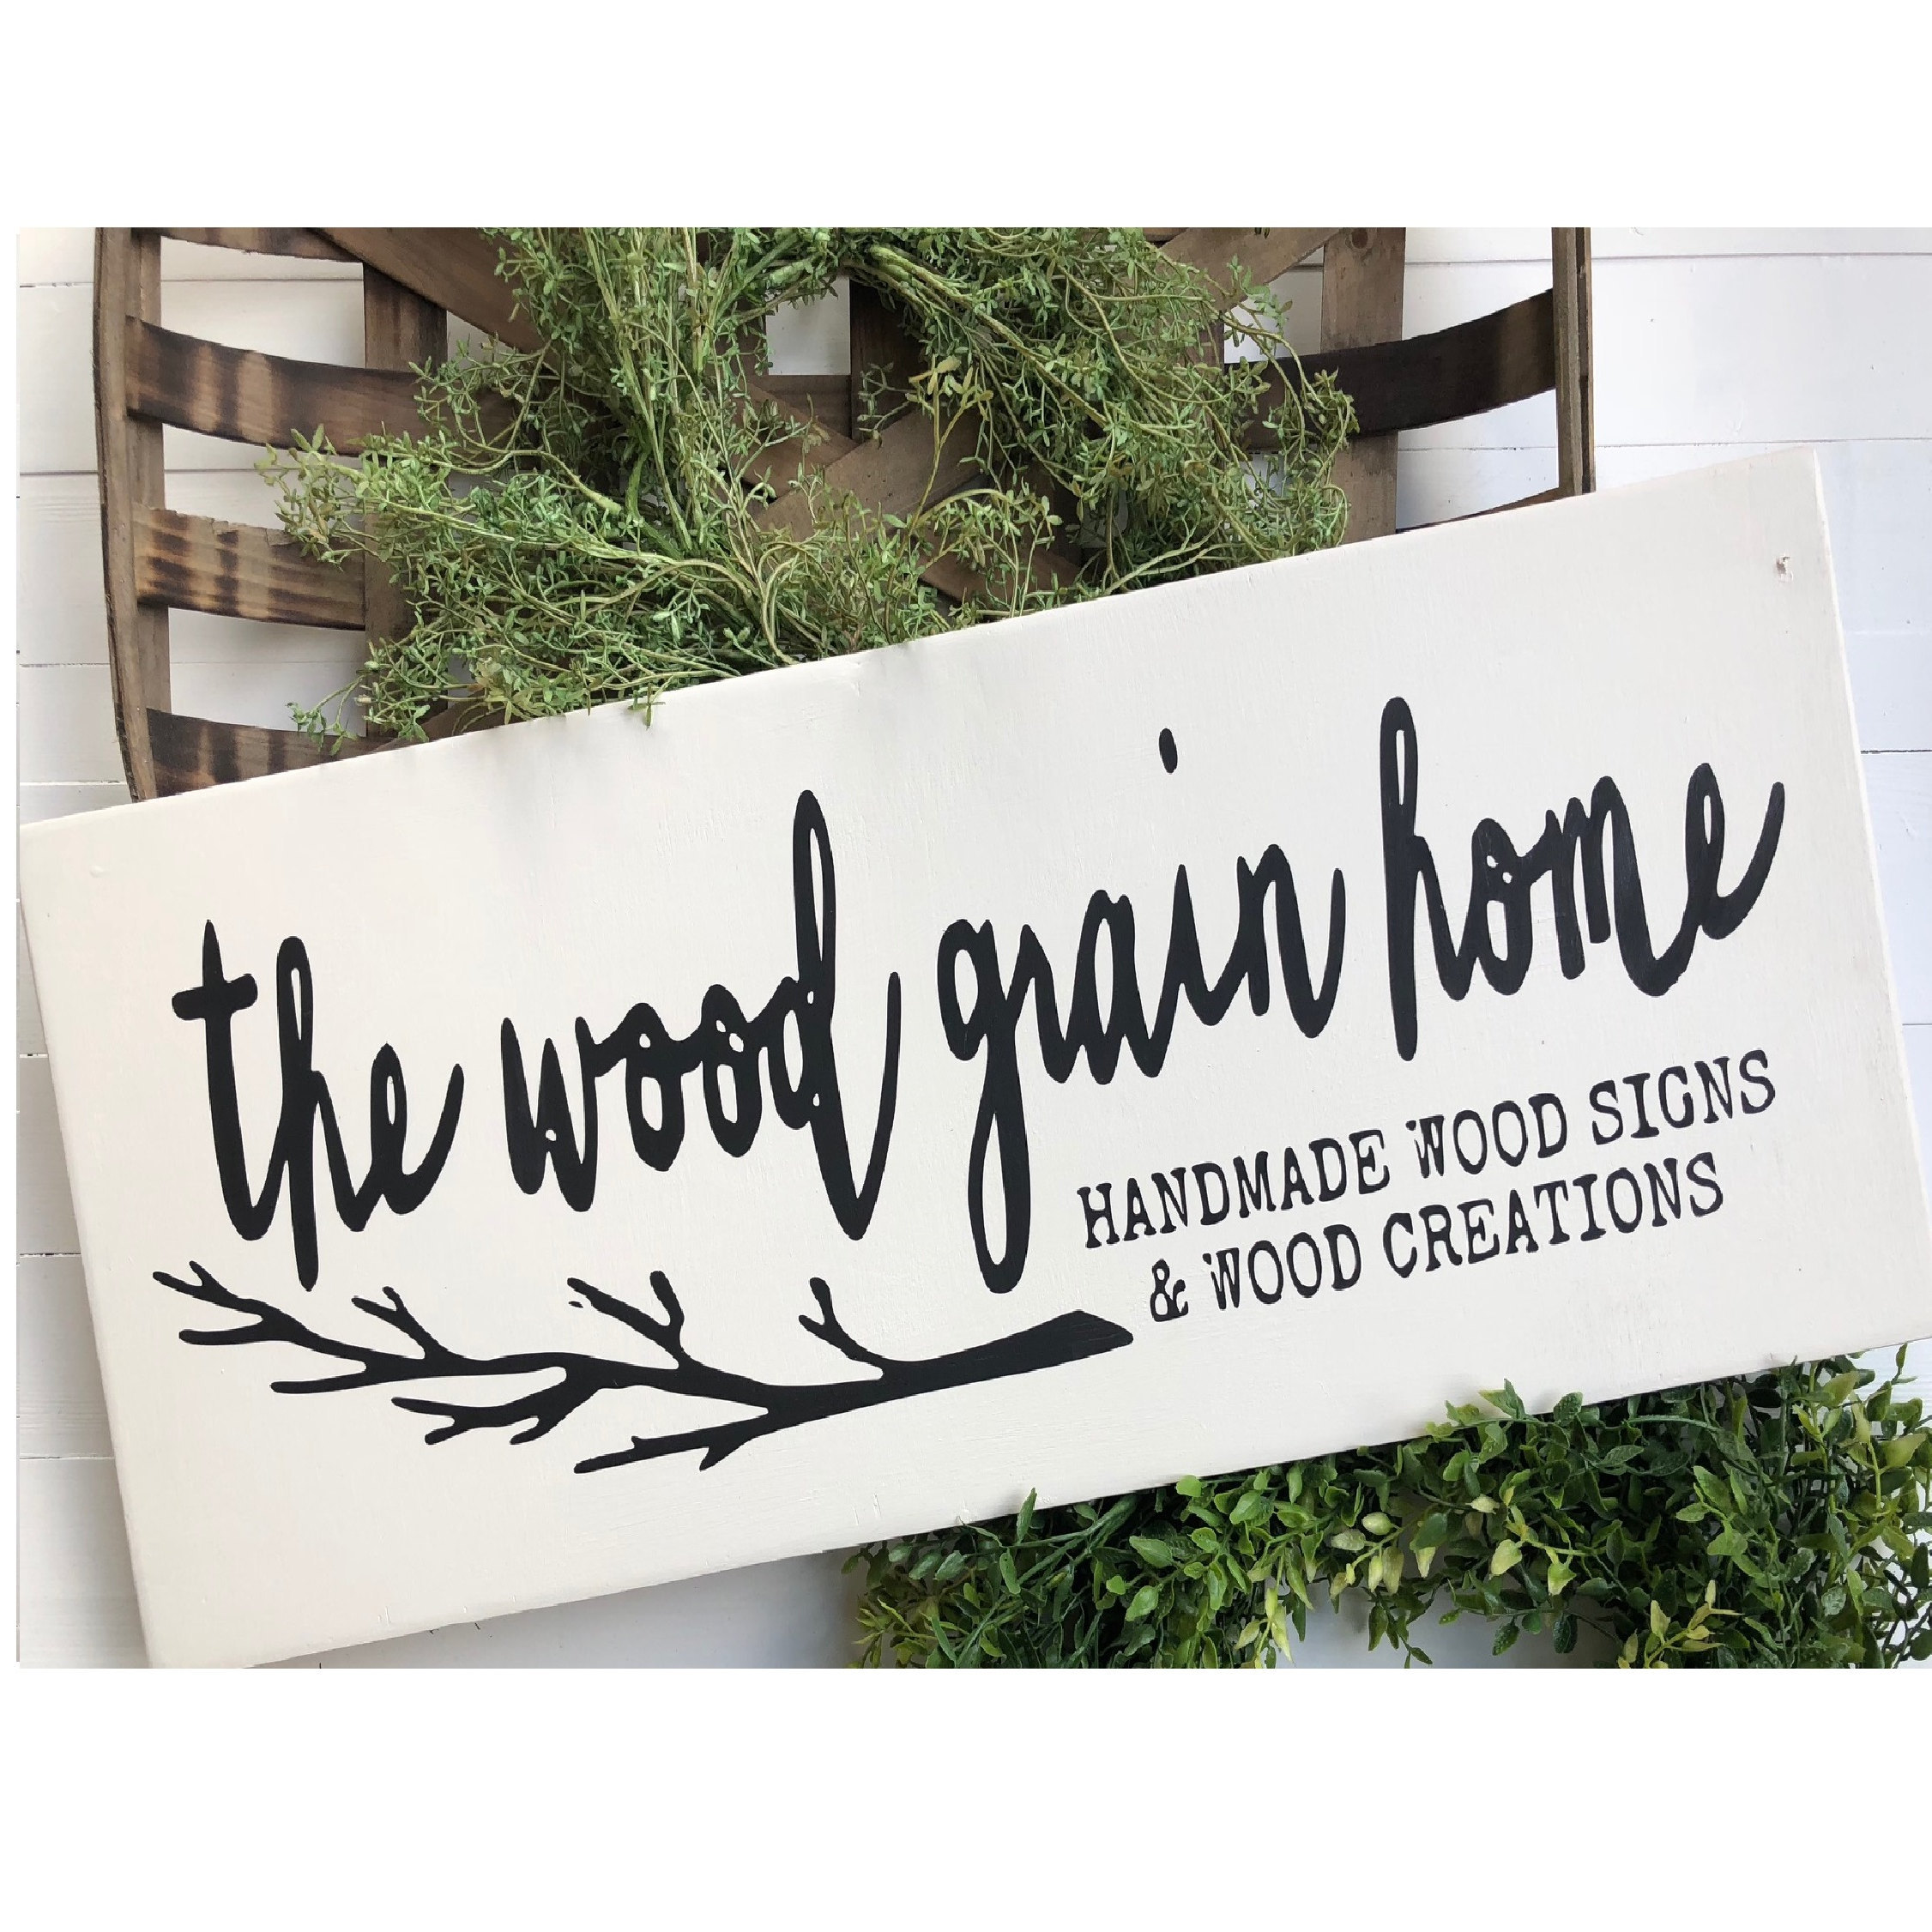 Handmade Wood Signs and Wood Creations by TheWoodGrainHome on Etsy